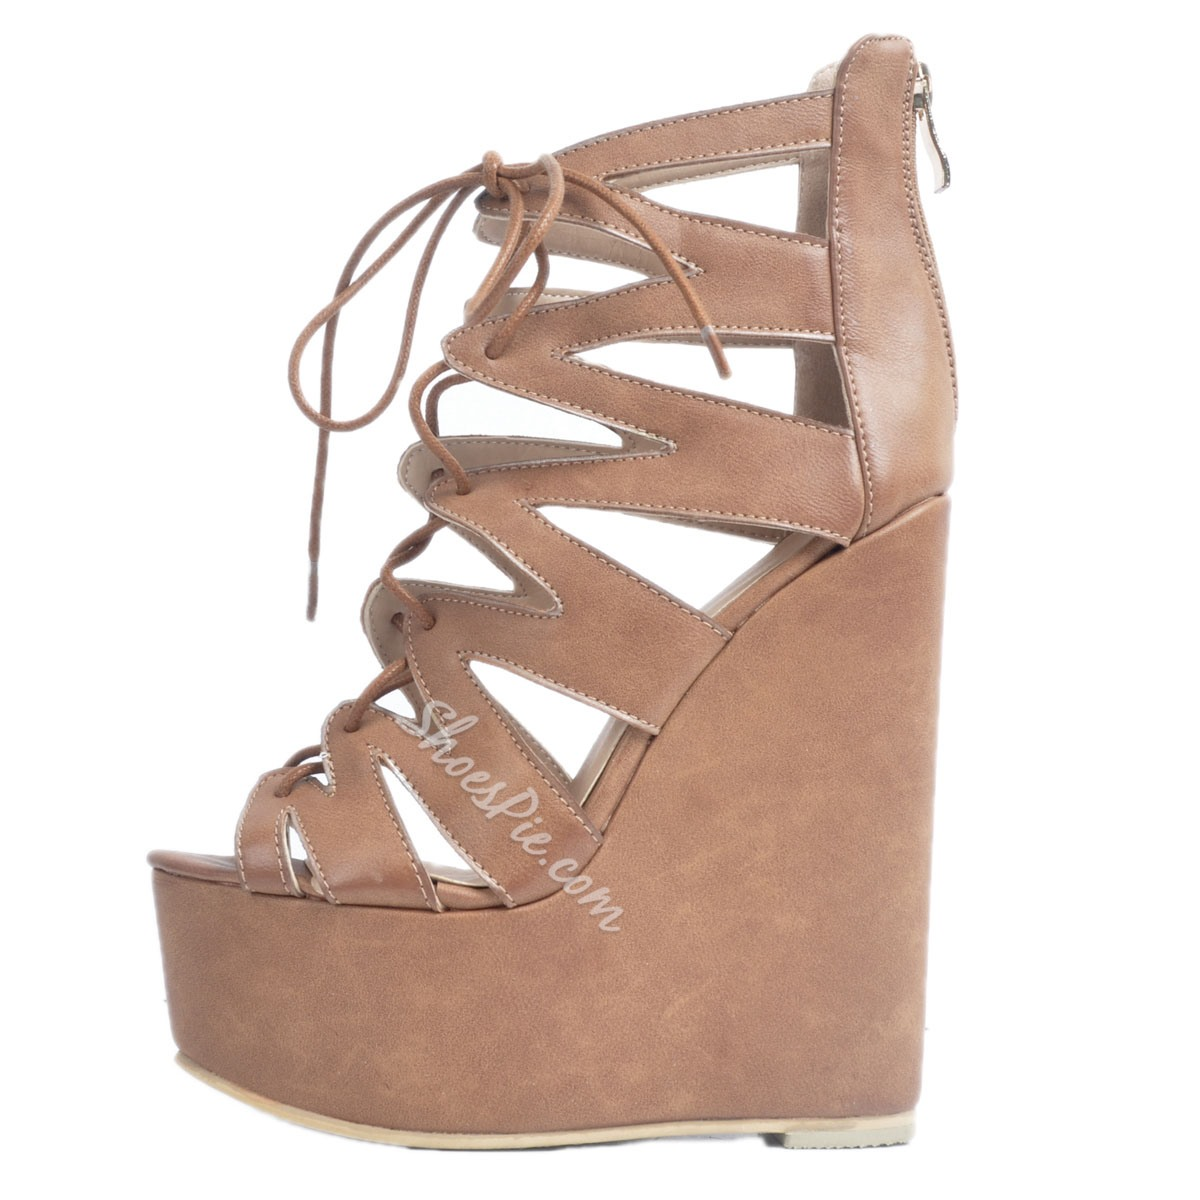 Shoespie Zipper Peep Toe Cross Strap Platform Wedge Heels Gladiator Sandals